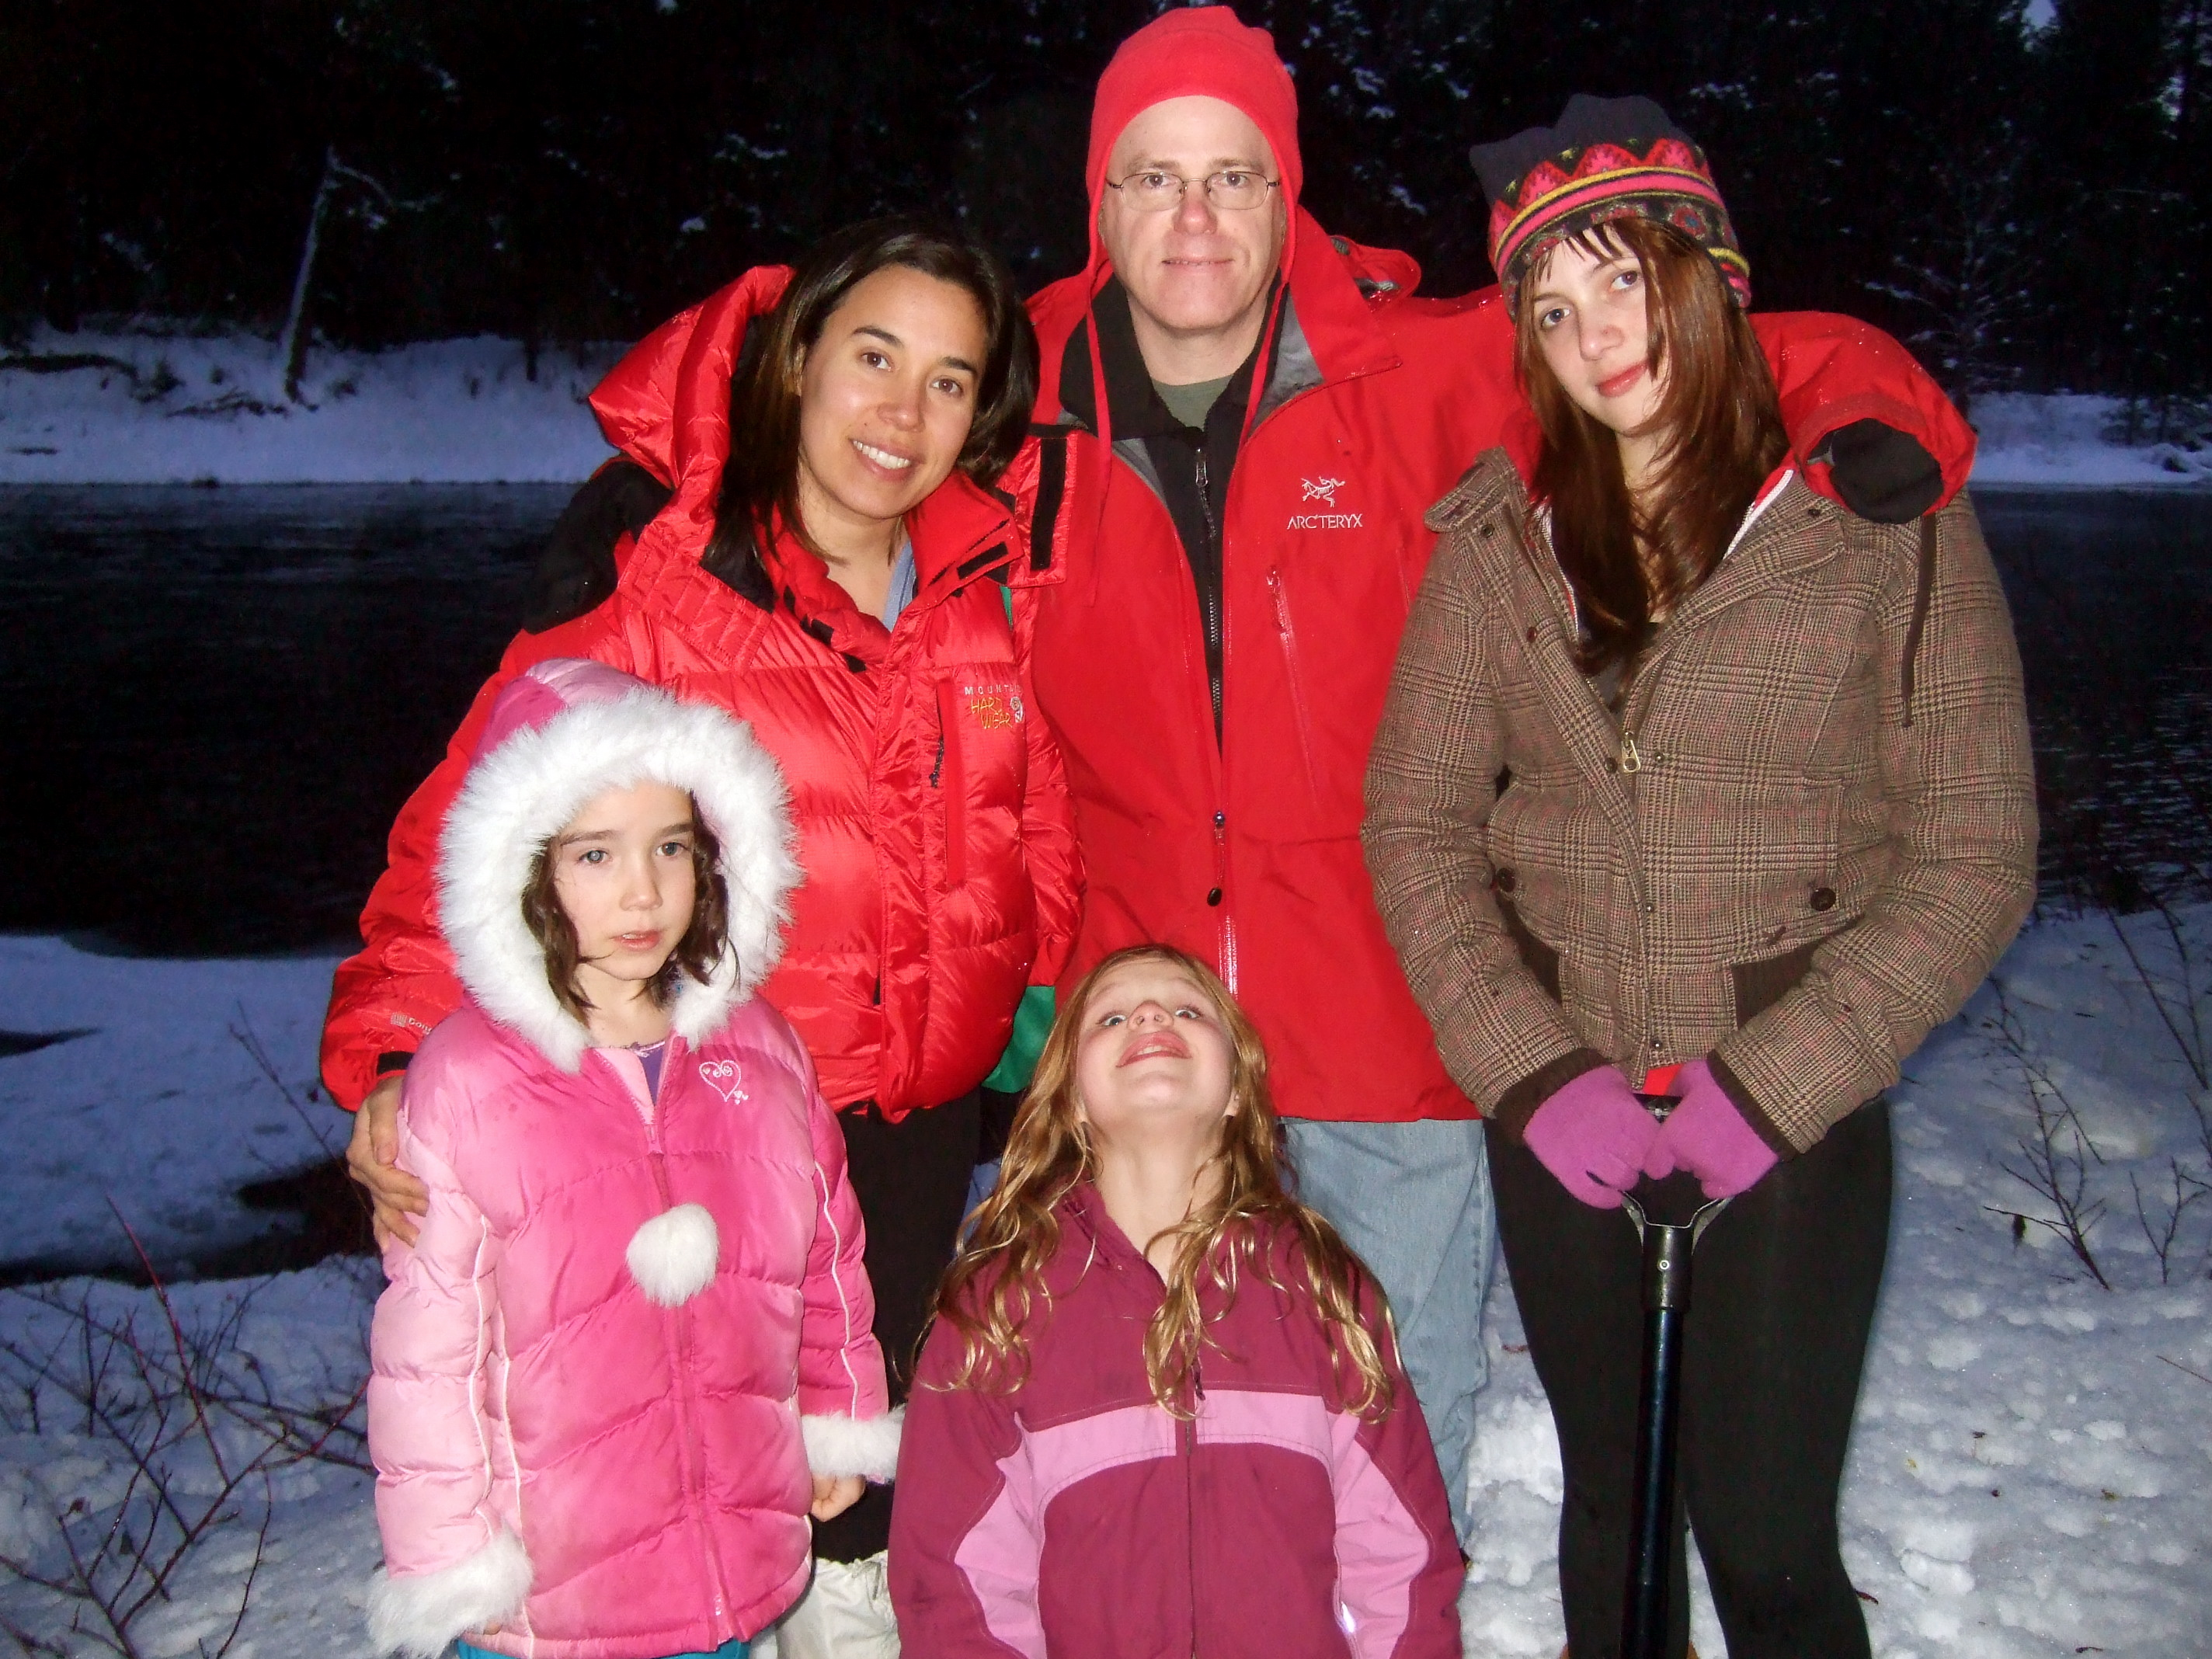 L2R: Kristina & William with Morgan in back with Talia & Kate in front. In the snow at the River House near Lake Wenatchee/Plain, WA. Wednesday 16 January 2008.